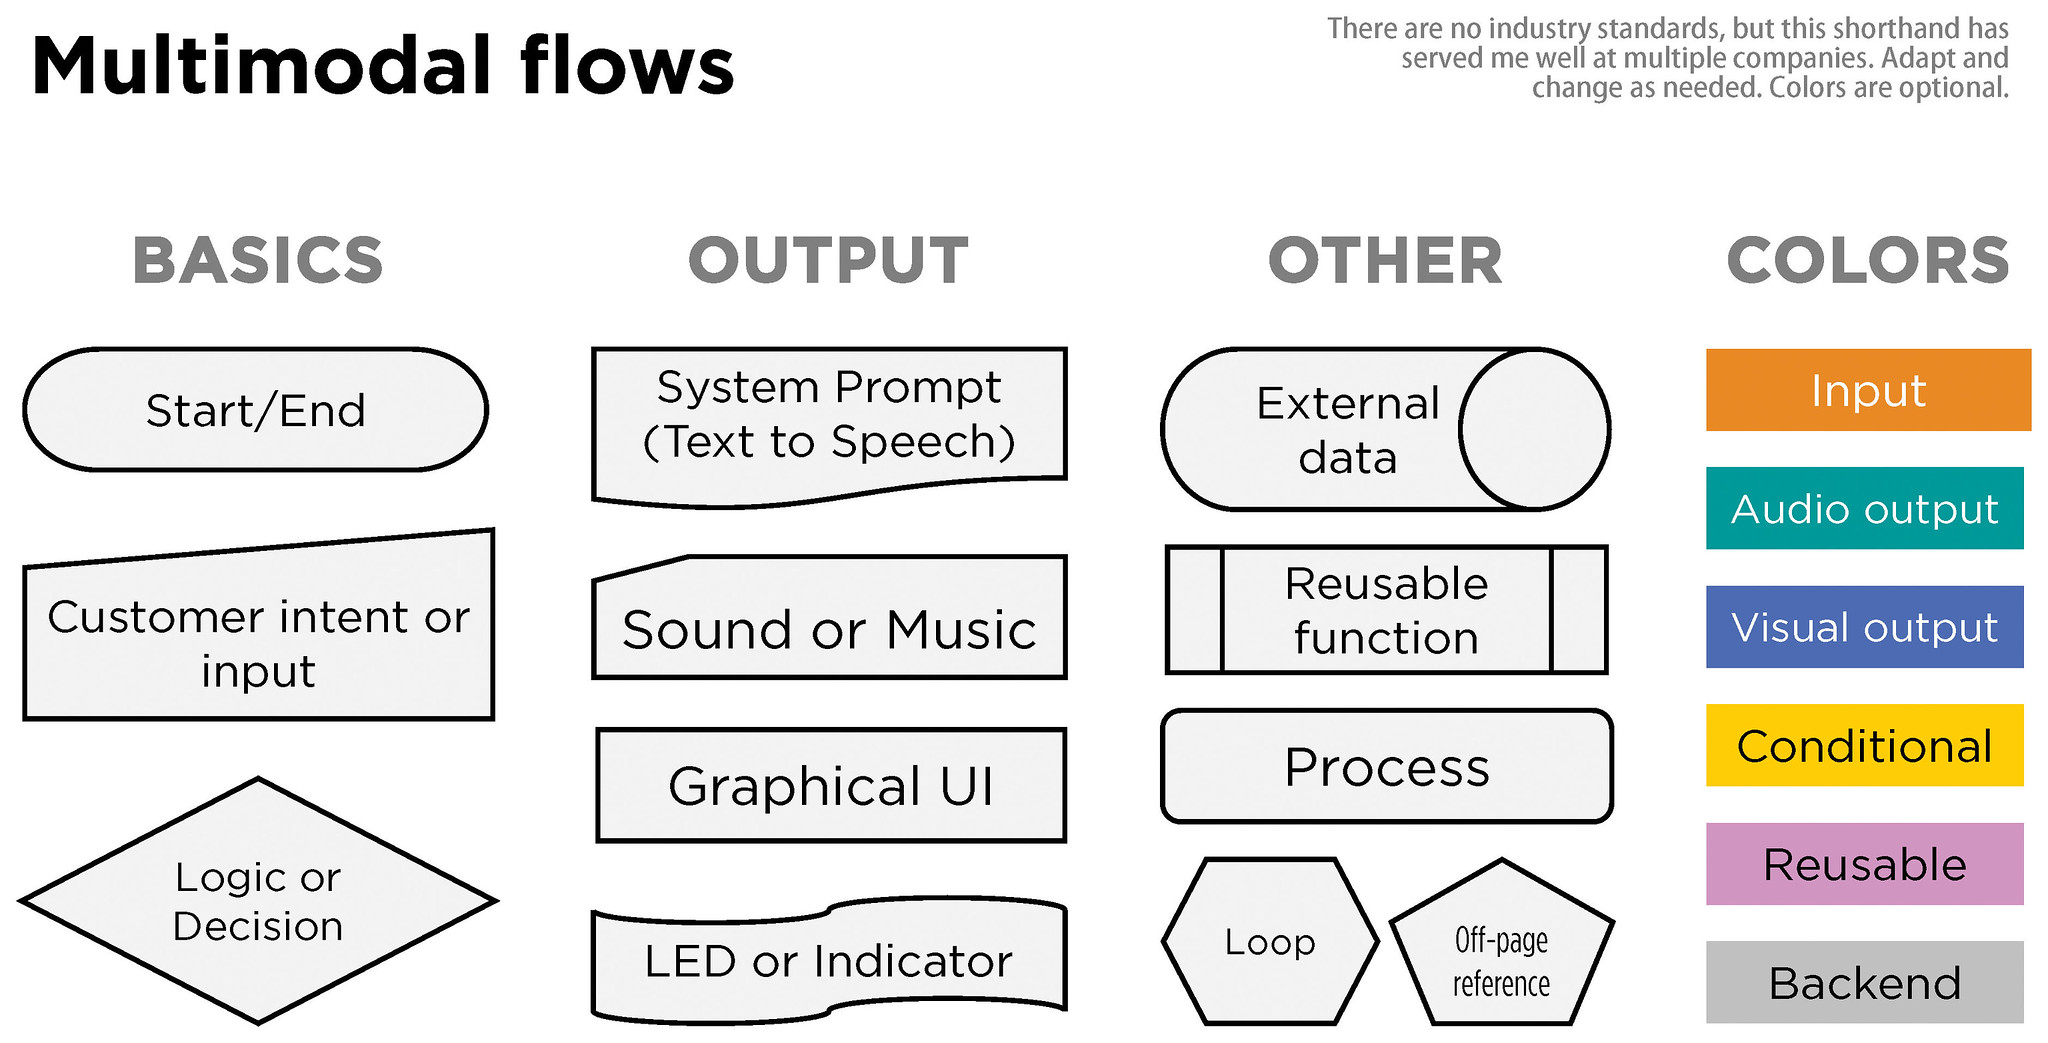 A pattern language for multimodal flow diagrams, adapted from Cheryl Platz's work on Windows Automotive and the Alexa Voice UI design team.